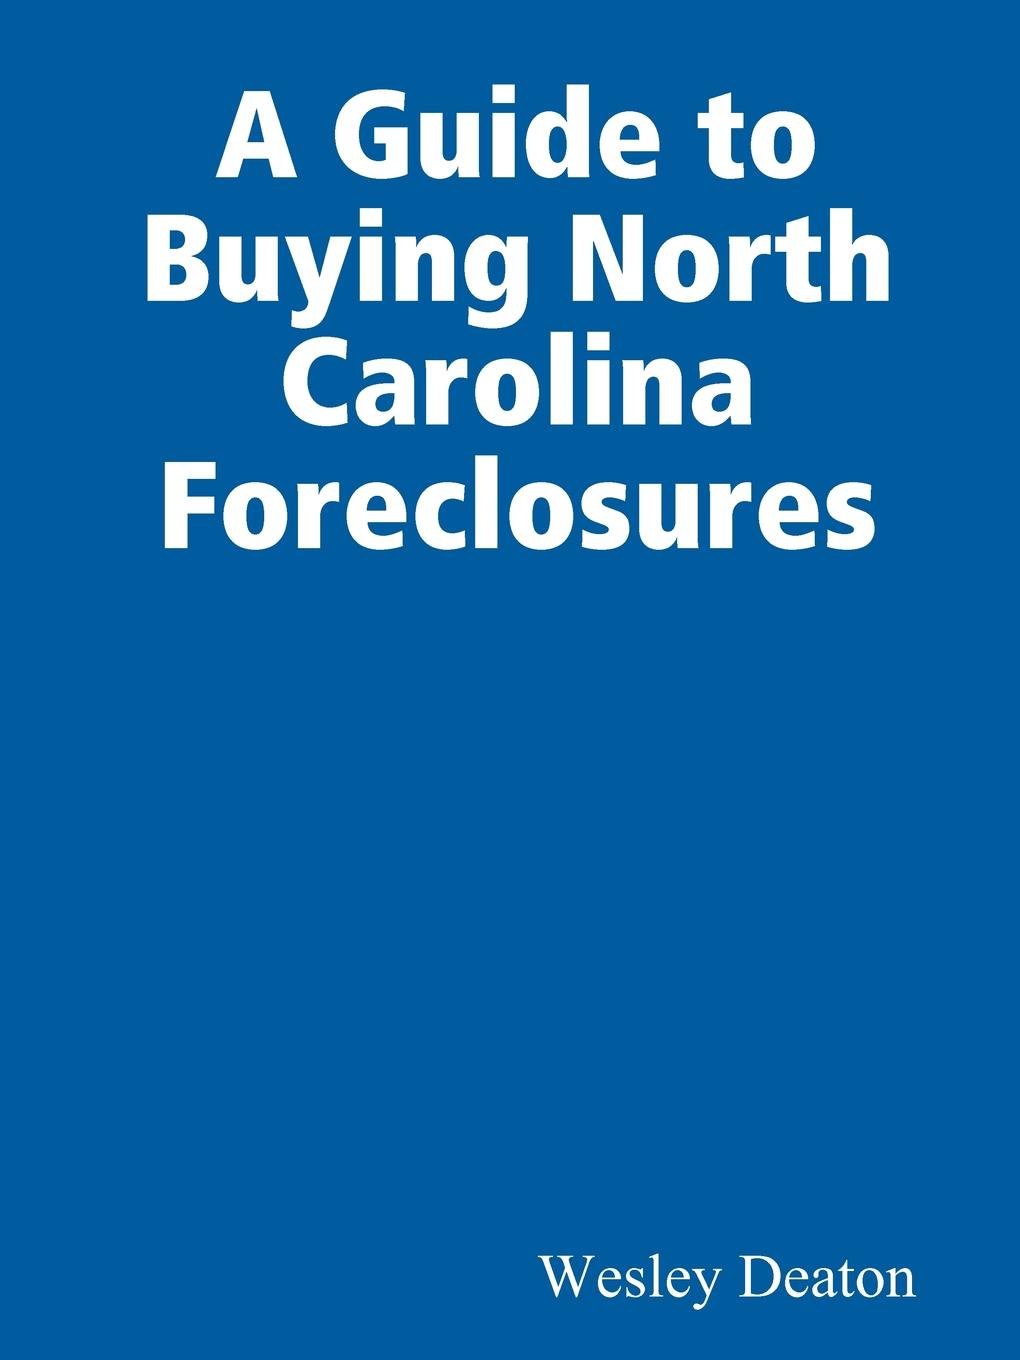 Wesley Deaton A Guide to Buying North Carolina Foreclosures dwan bent twyford short sale pre foreclosure investing how to buy no equity properties directly from the bank at huge discounts